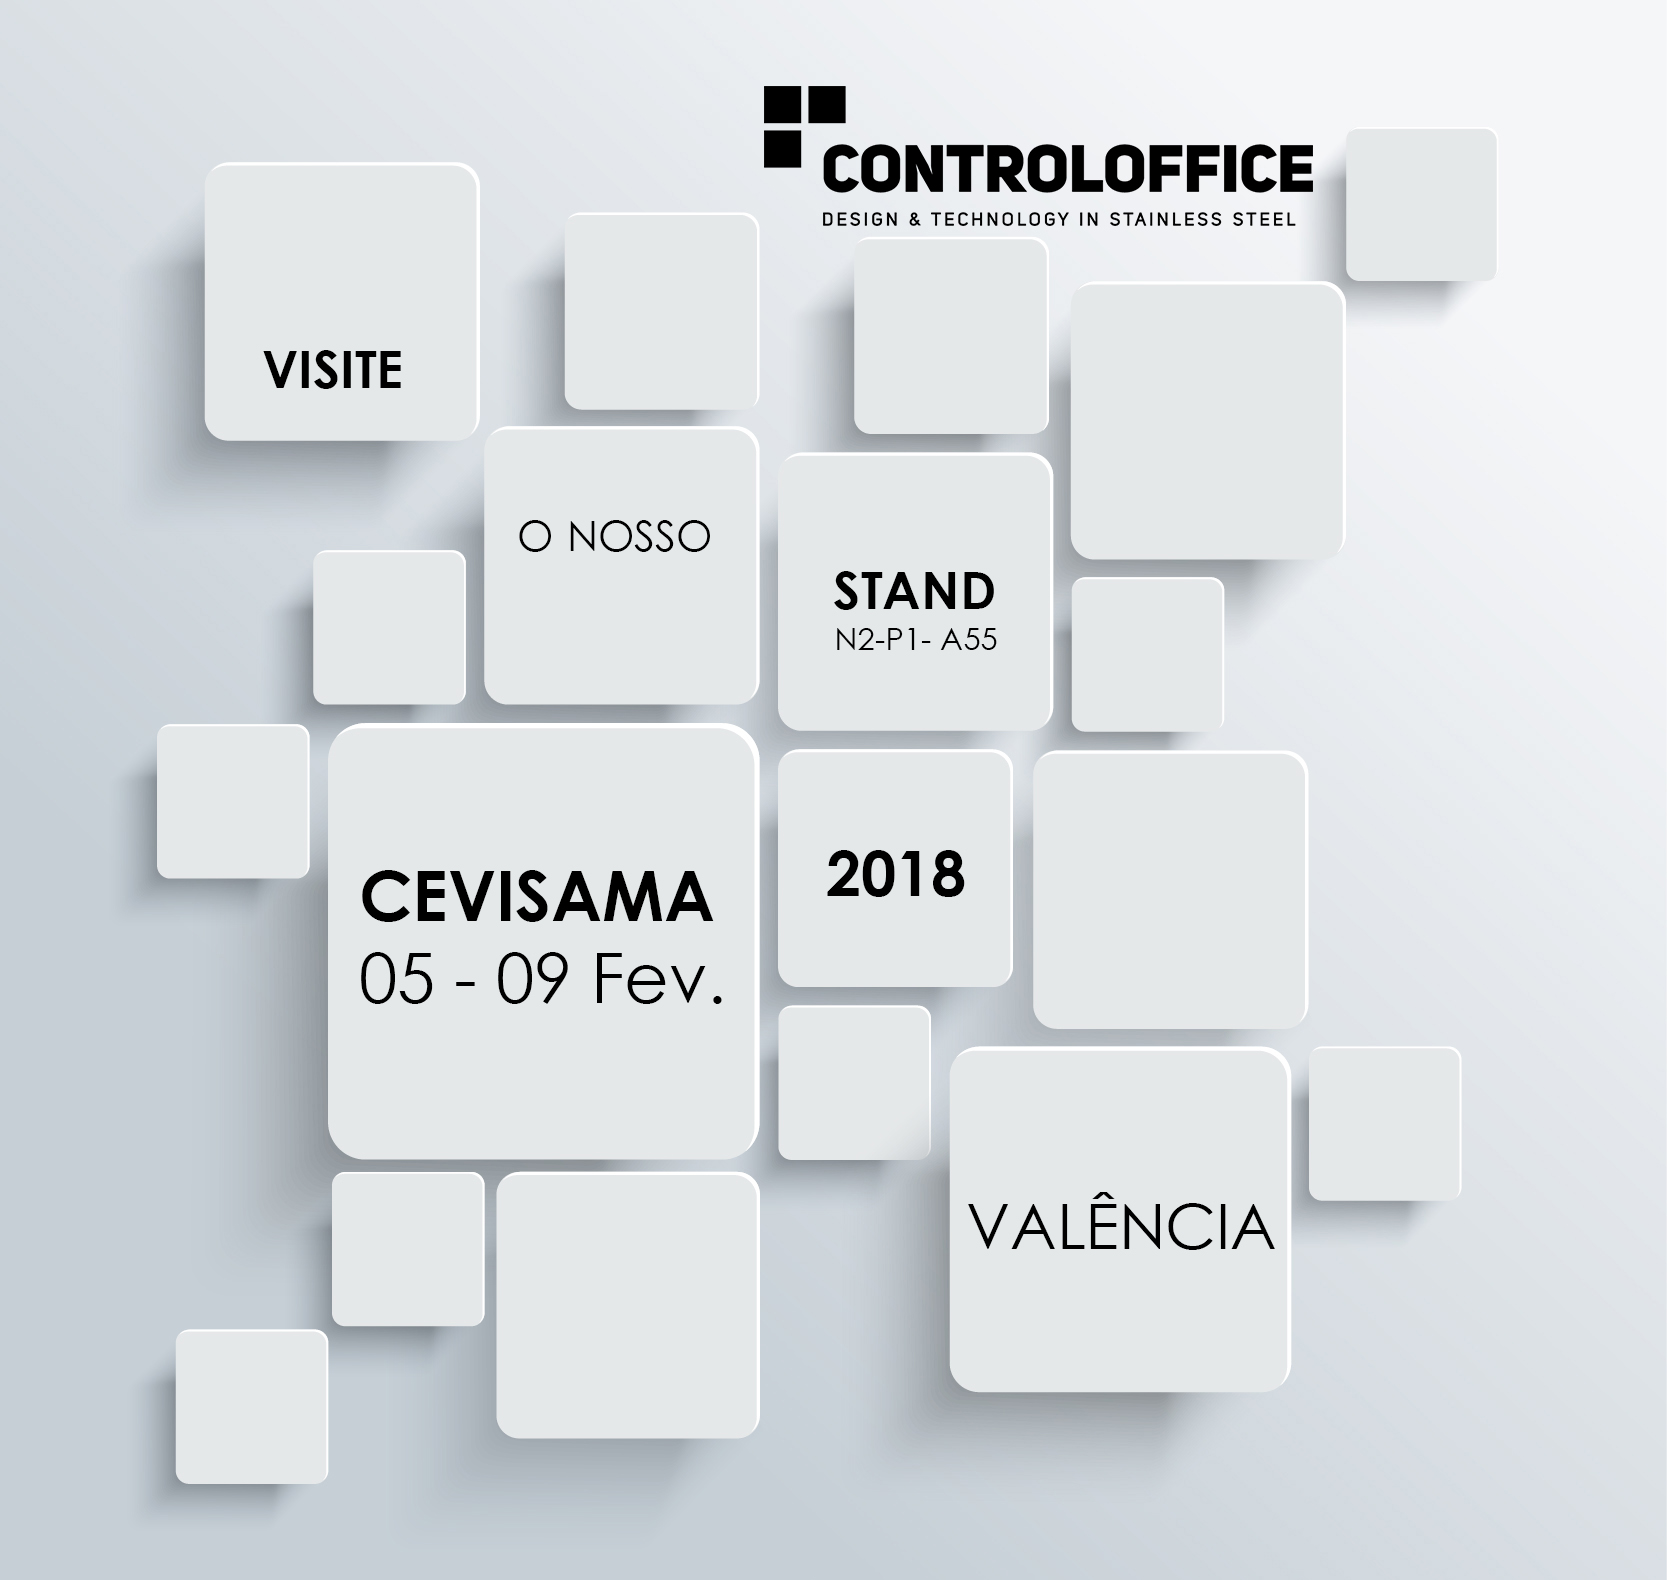 Cevisama 2018 controloffice for Cevisama 2018